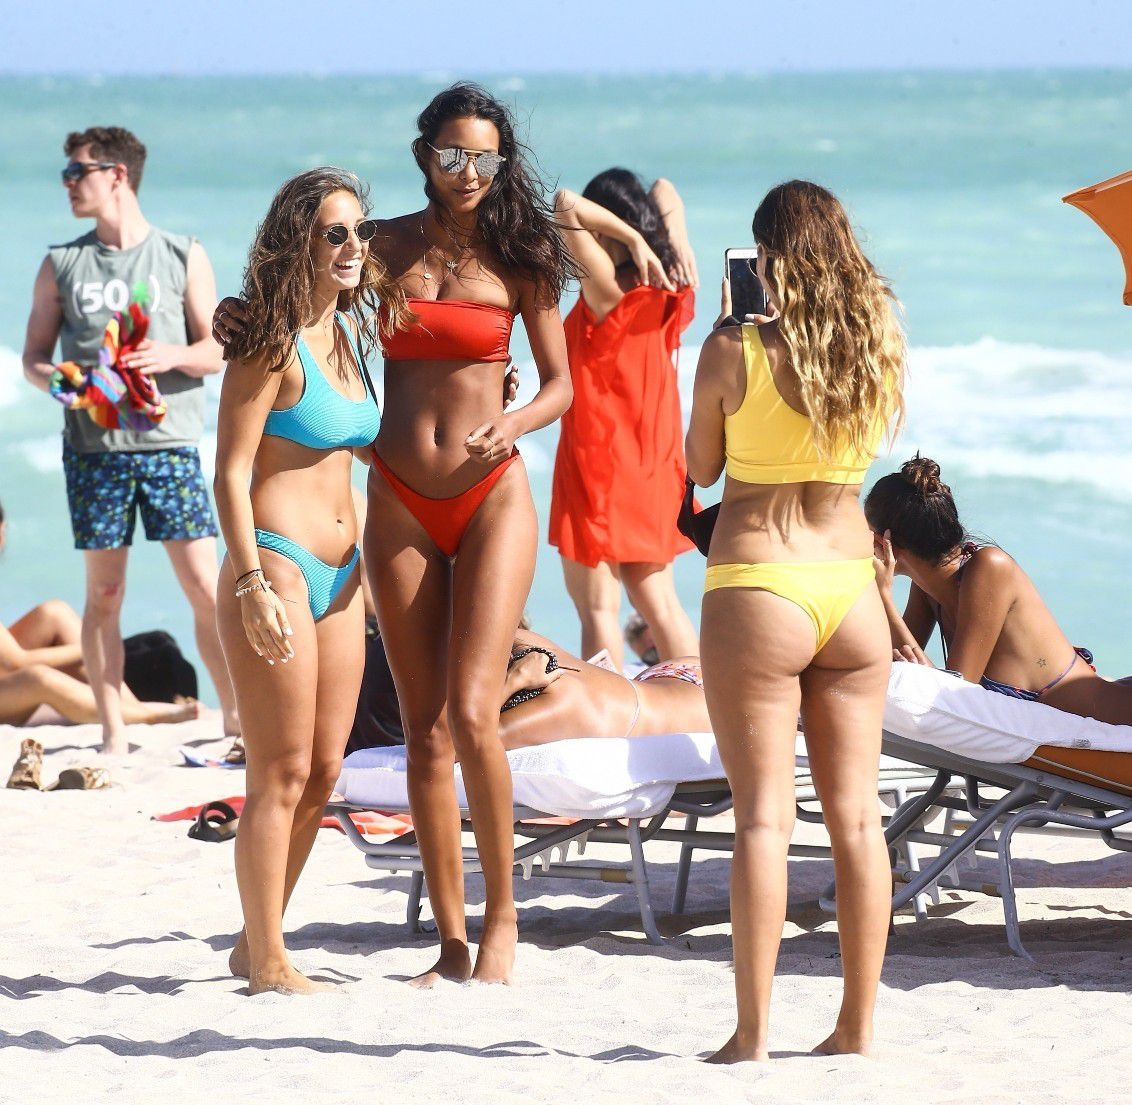 lais-ribeiro-ass-in-thong-bikini-on-the-beach-in-miami-4914